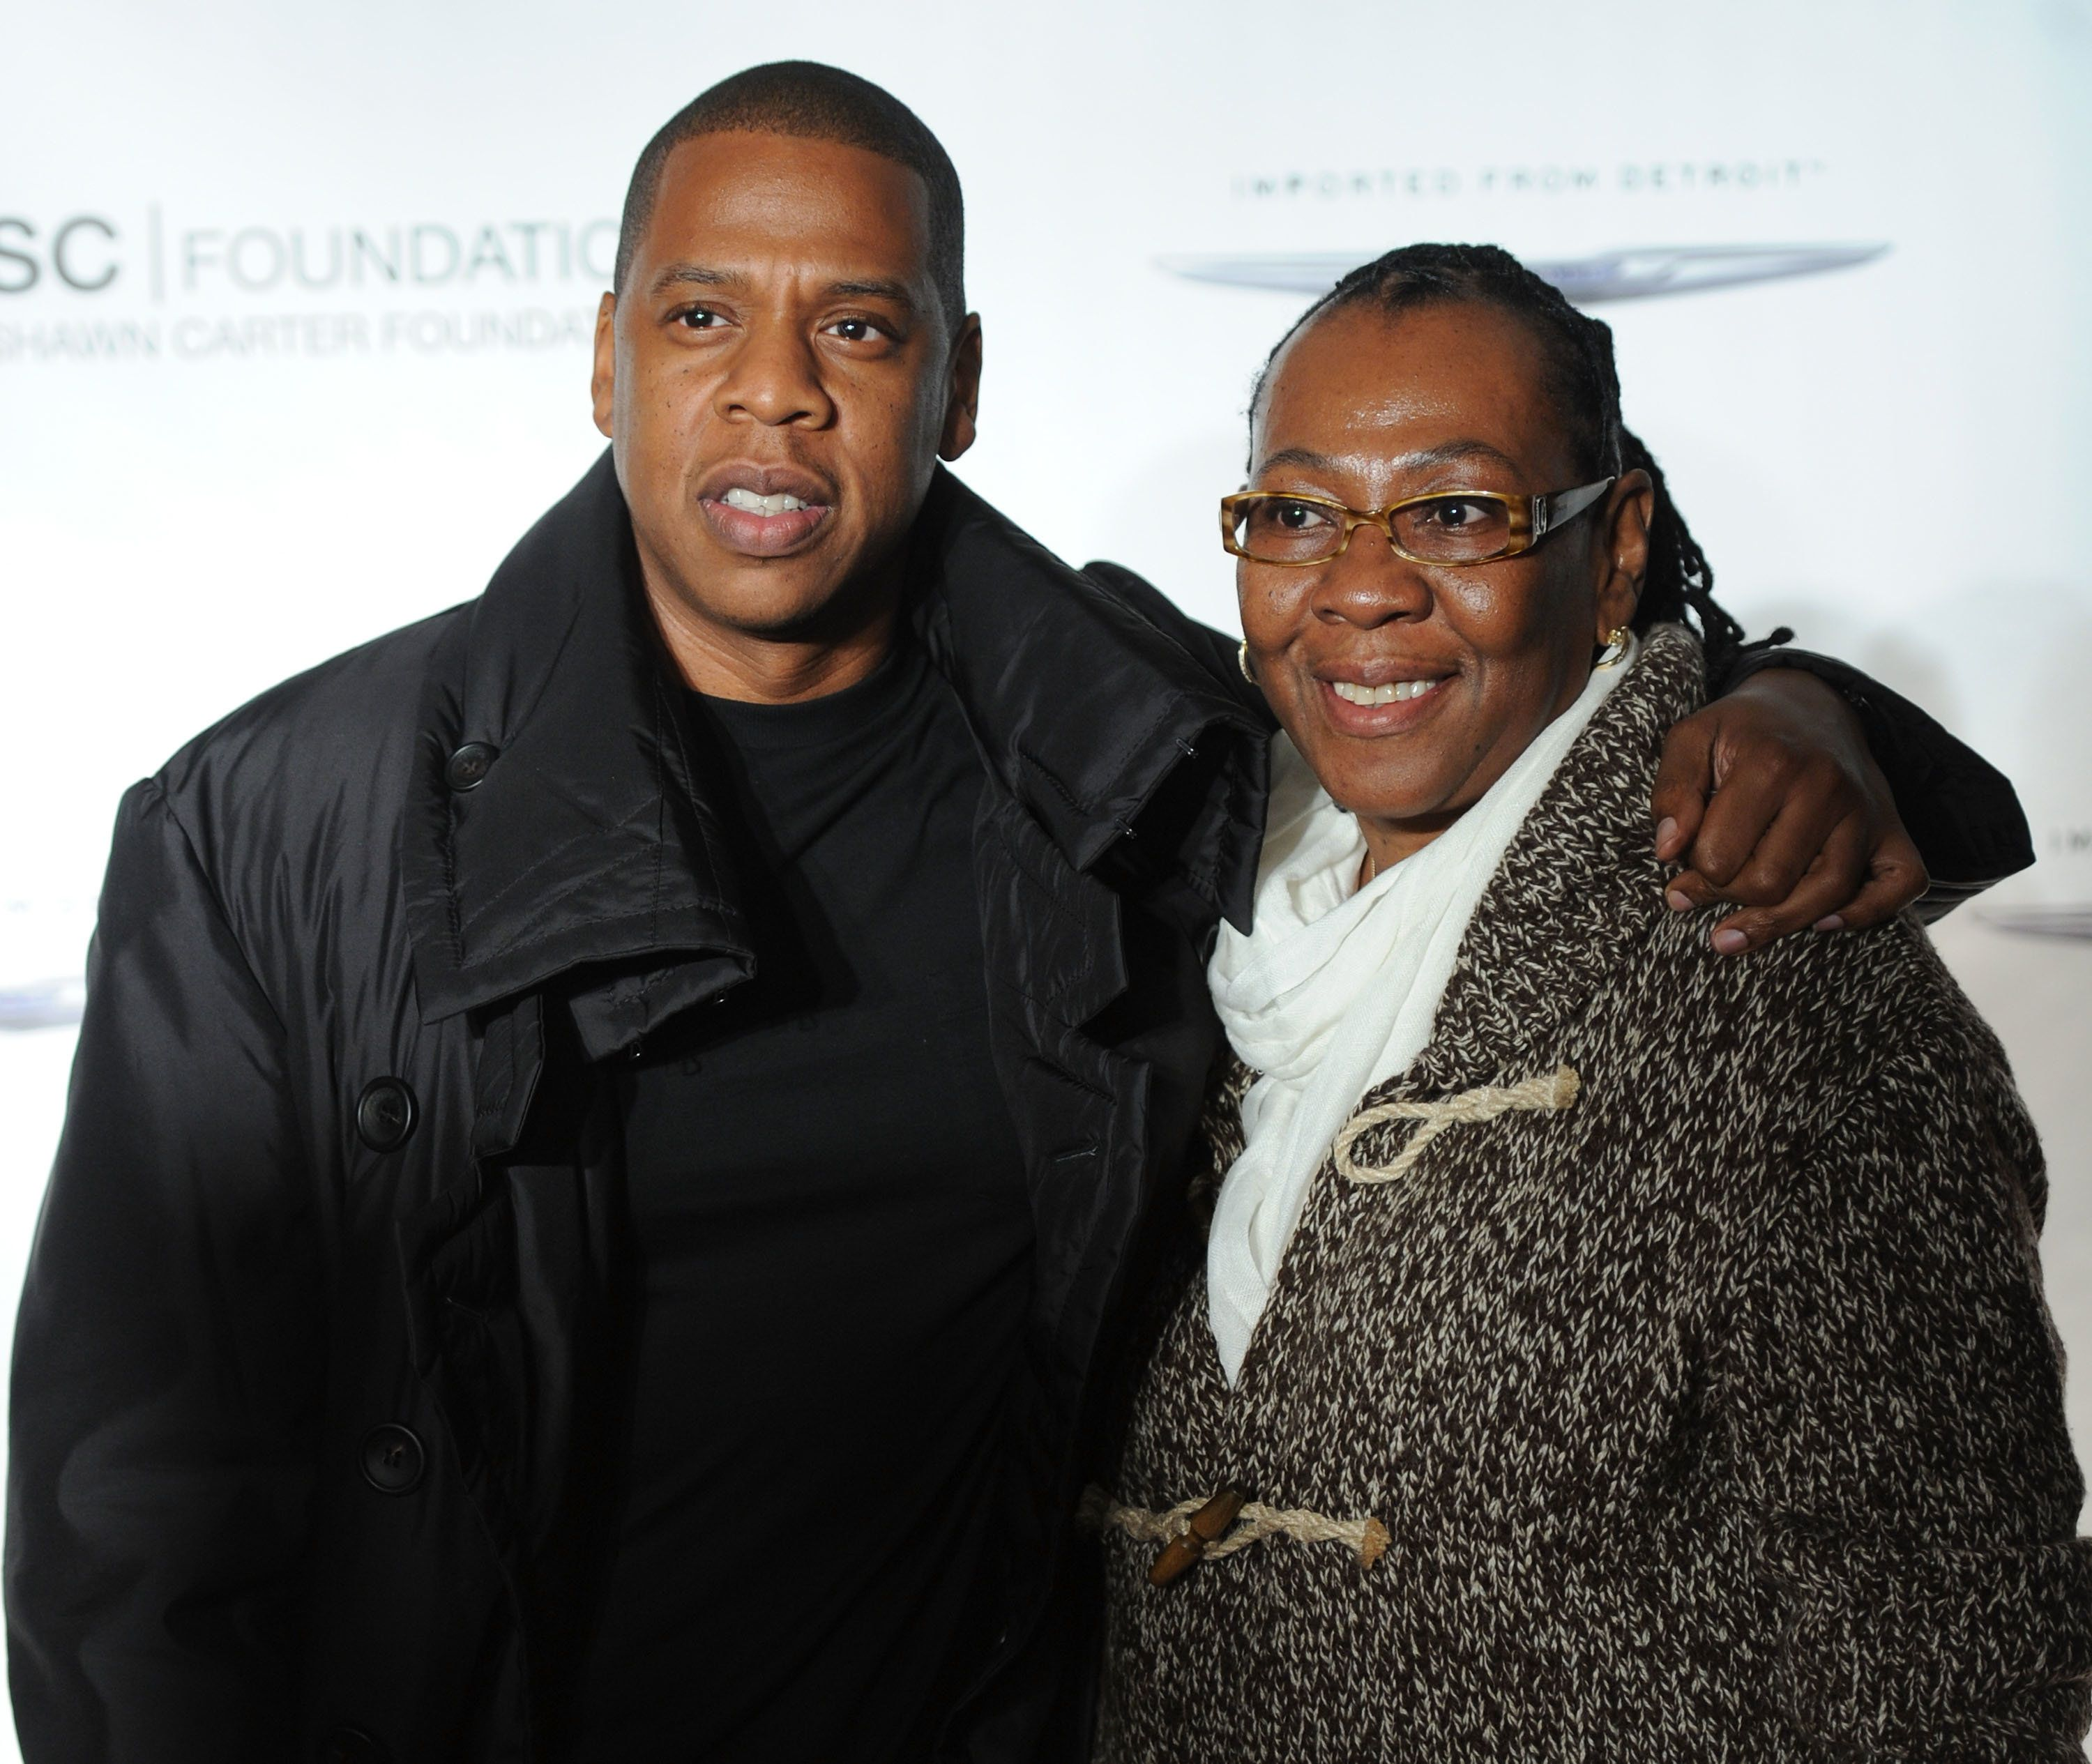 NEW YORK, NY - SEPTEMBER 29:  Jay-Z poses with his mother, Gloria Carter during an evening of 'Making The Ordinary Extraordinary' hosted by The Shawn Carter Foundation at Pier 54 on September 29, 2011 in New York City.  (Photo by Jamie McCarthy/WireImage)